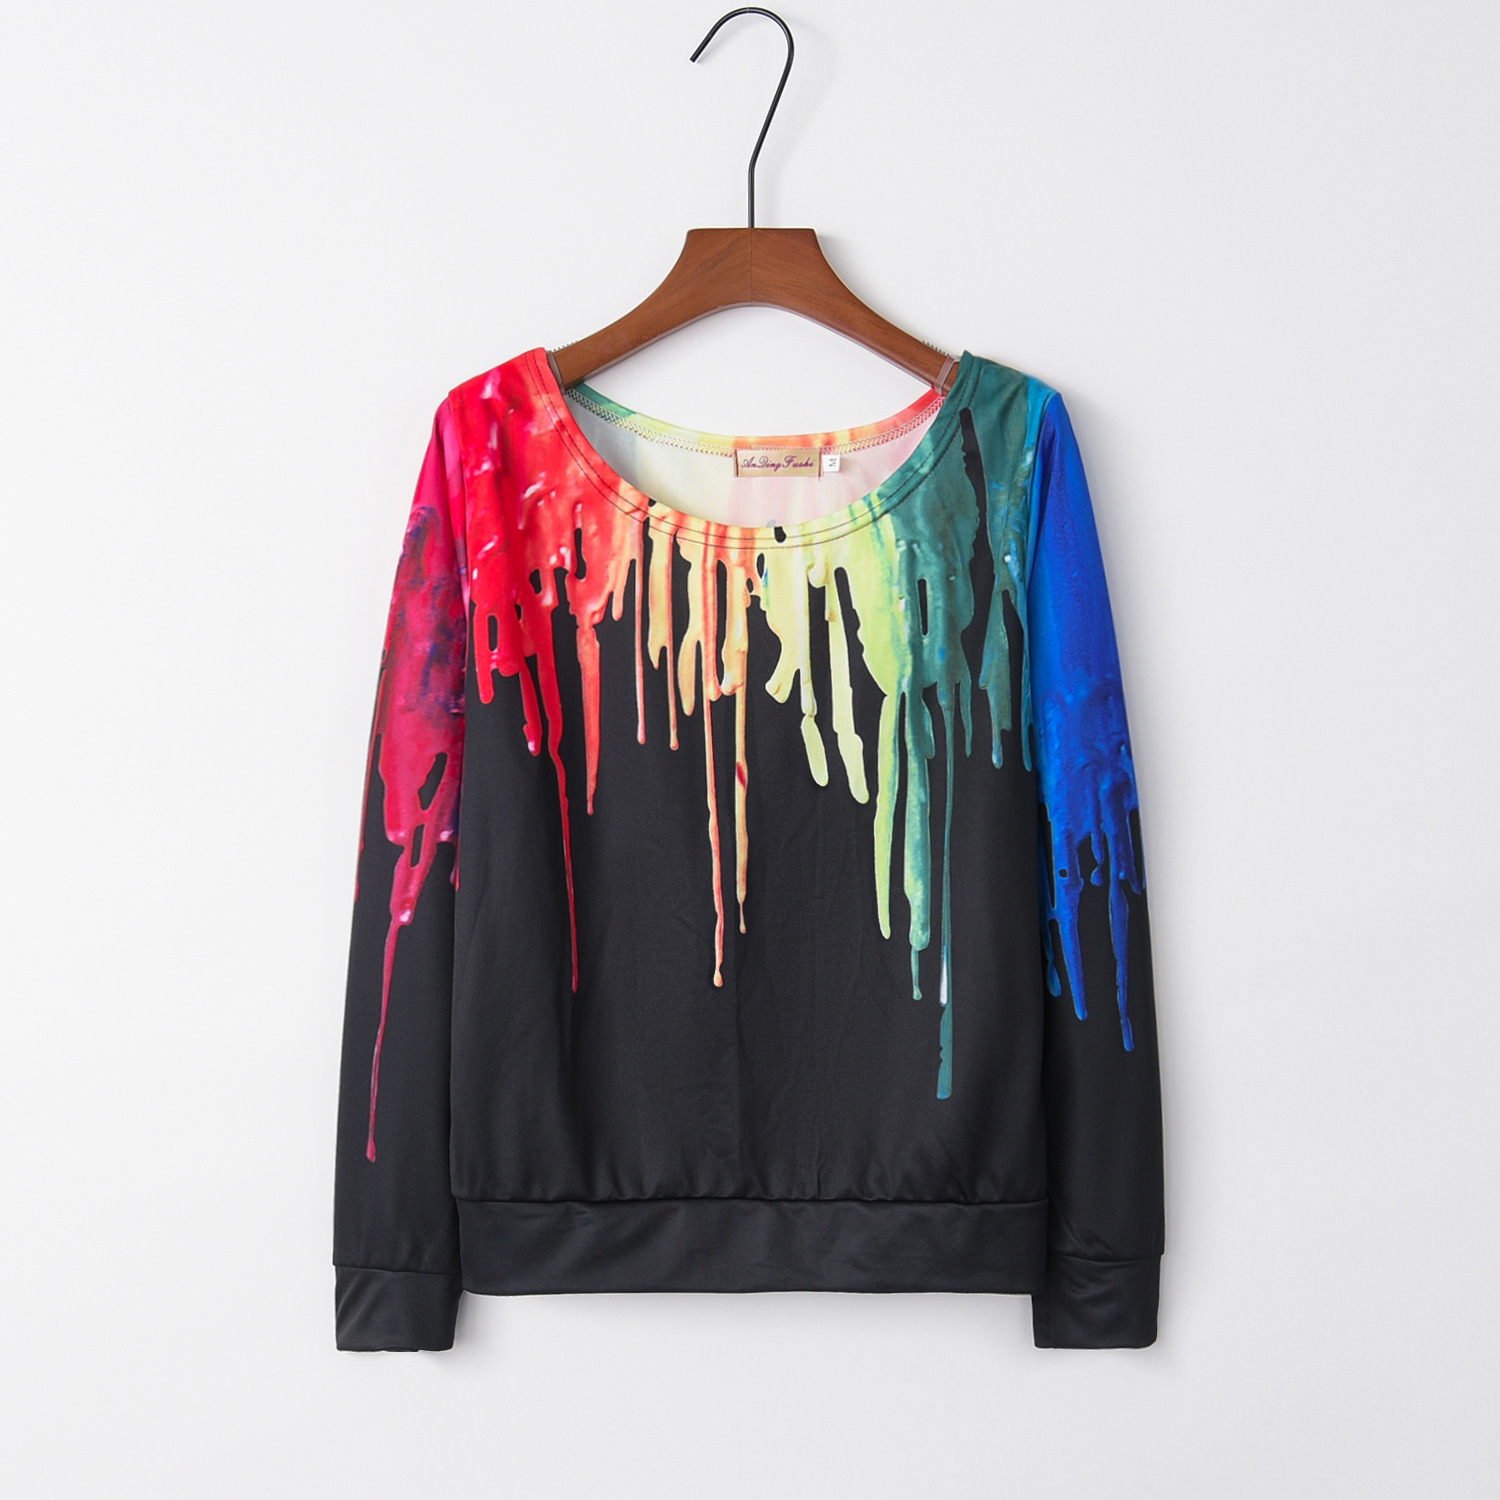 Rainbow Scrawl Dauber 2020 New Design Hot Sale Hoodies Sweatshirts Women Casual Kawaii Harajuku Sweat Girls European Tops Korean